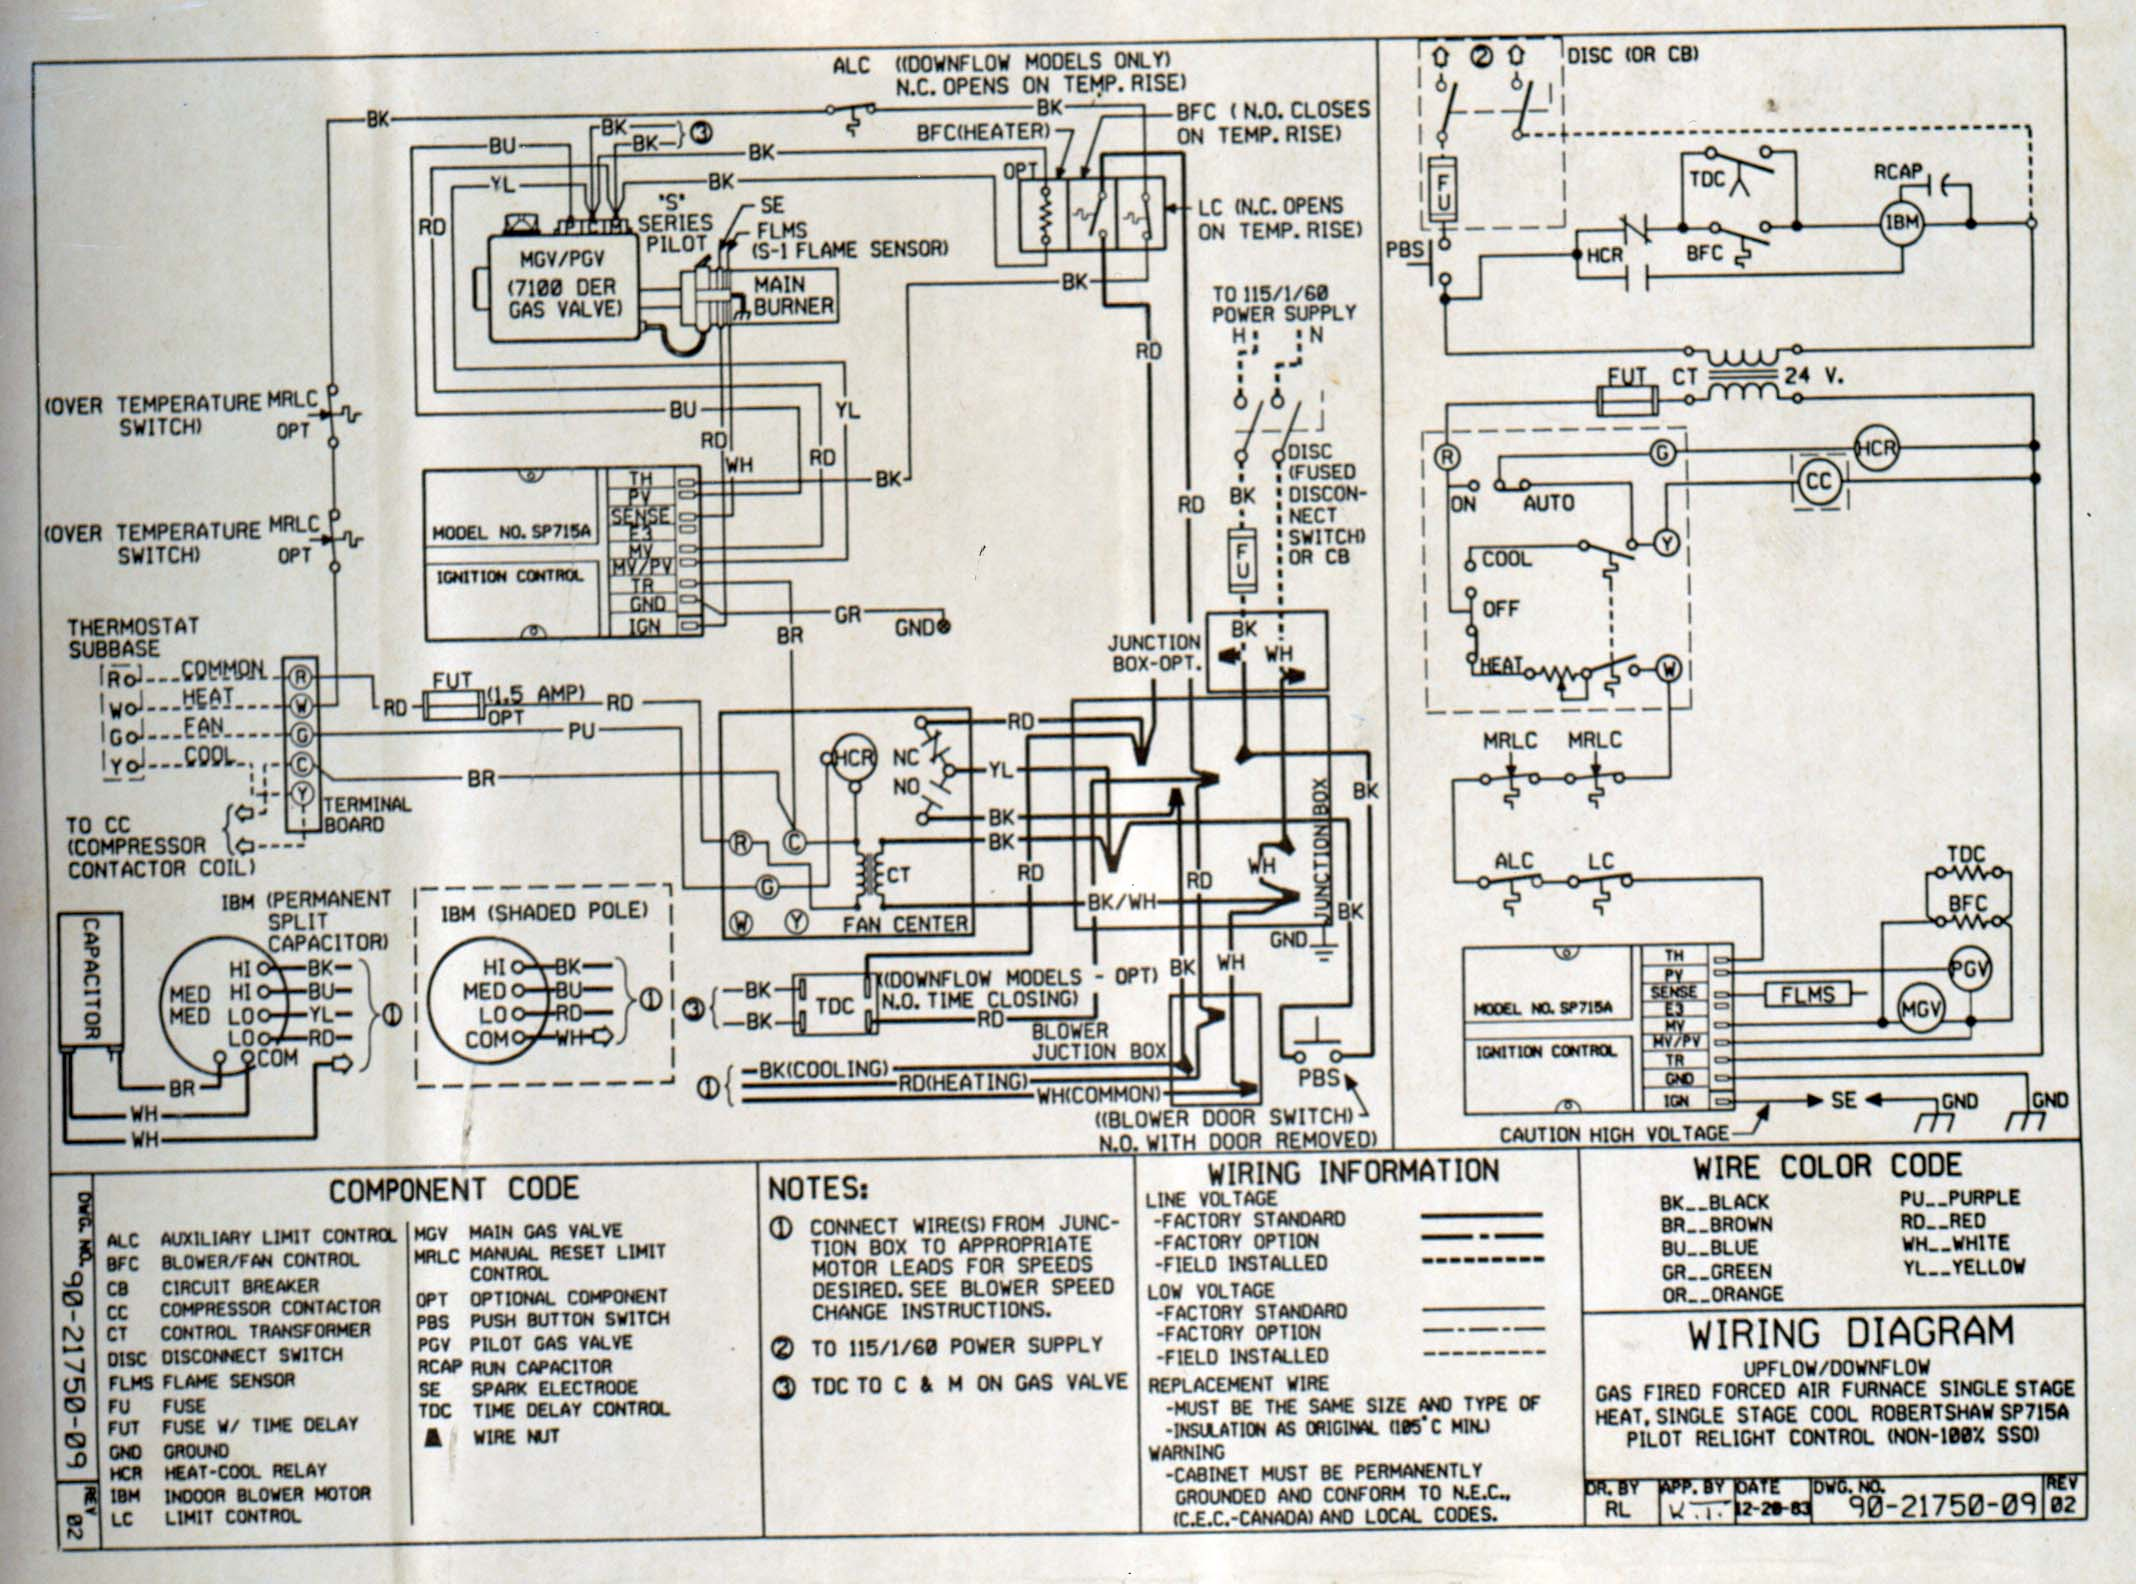 2011-02-27_064544_wiring York Condenser Wiring Schematics on york control board, york condensing unit model numbers, york defrost board wiring diagram, york heat pump parts diagram,